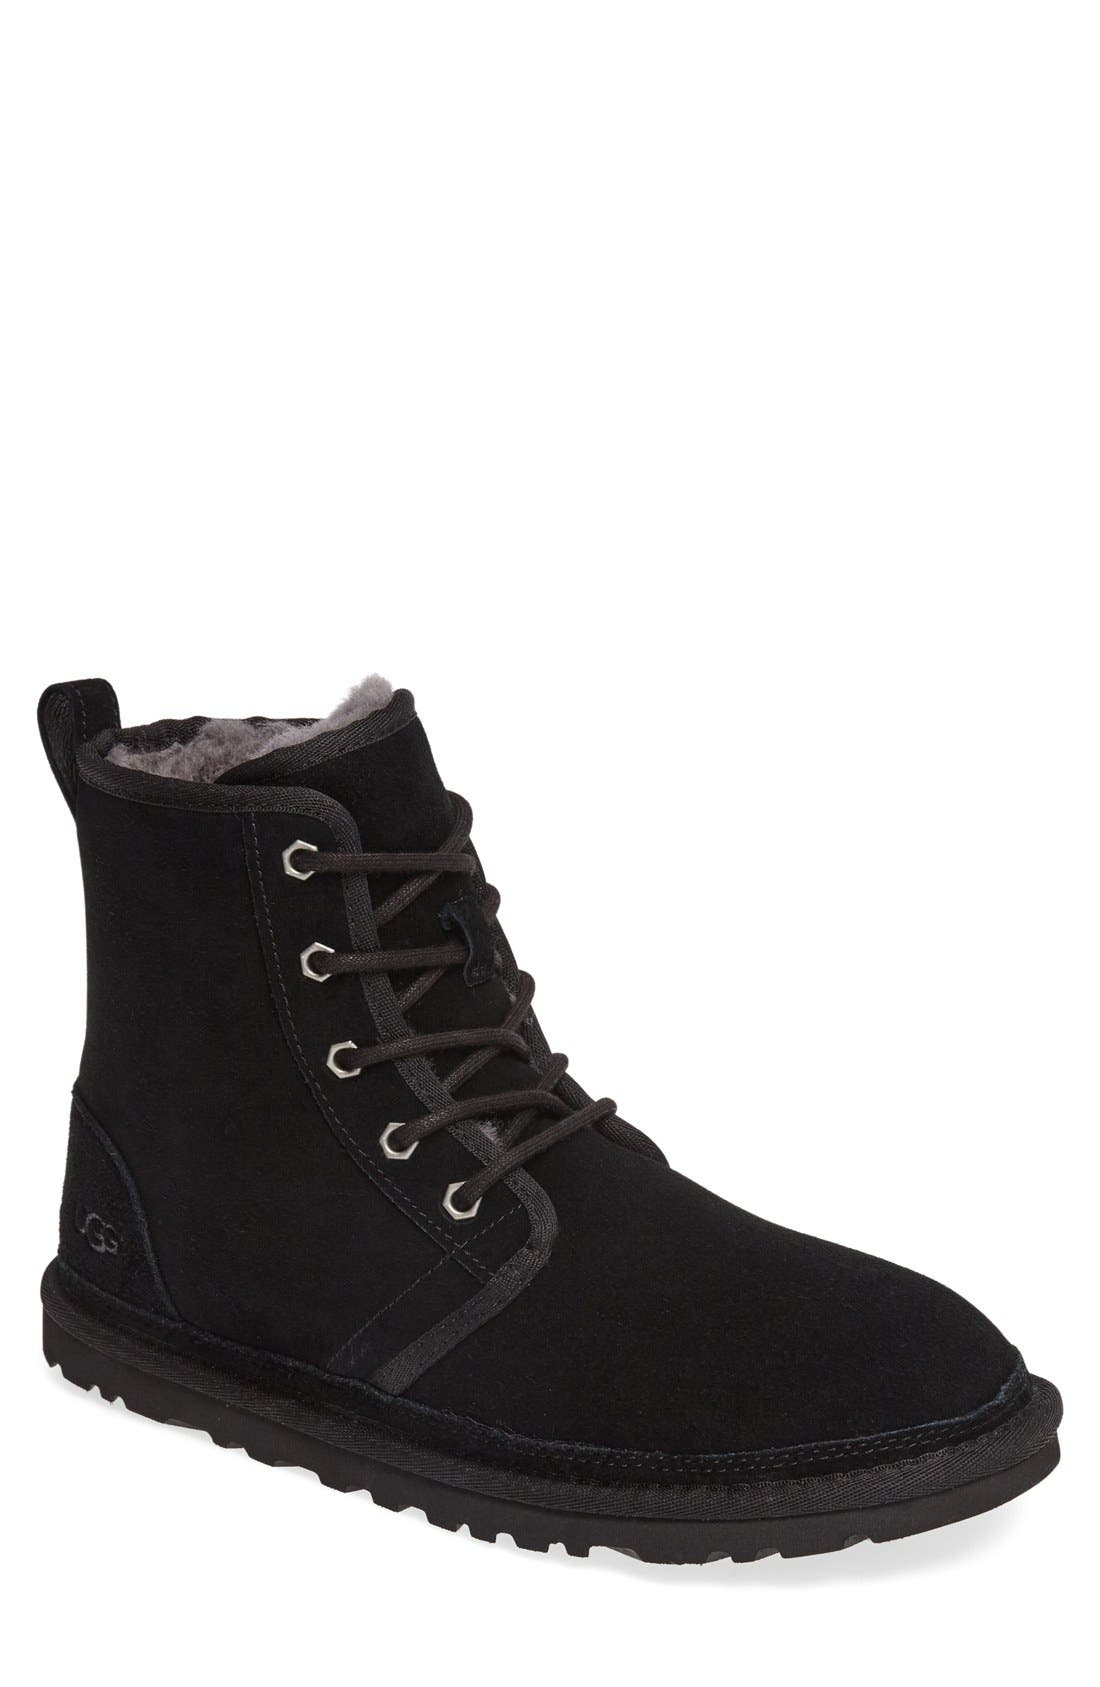 Alternate Image 1 Selected - UGG® Harkley Lace-Up Boot (Men)